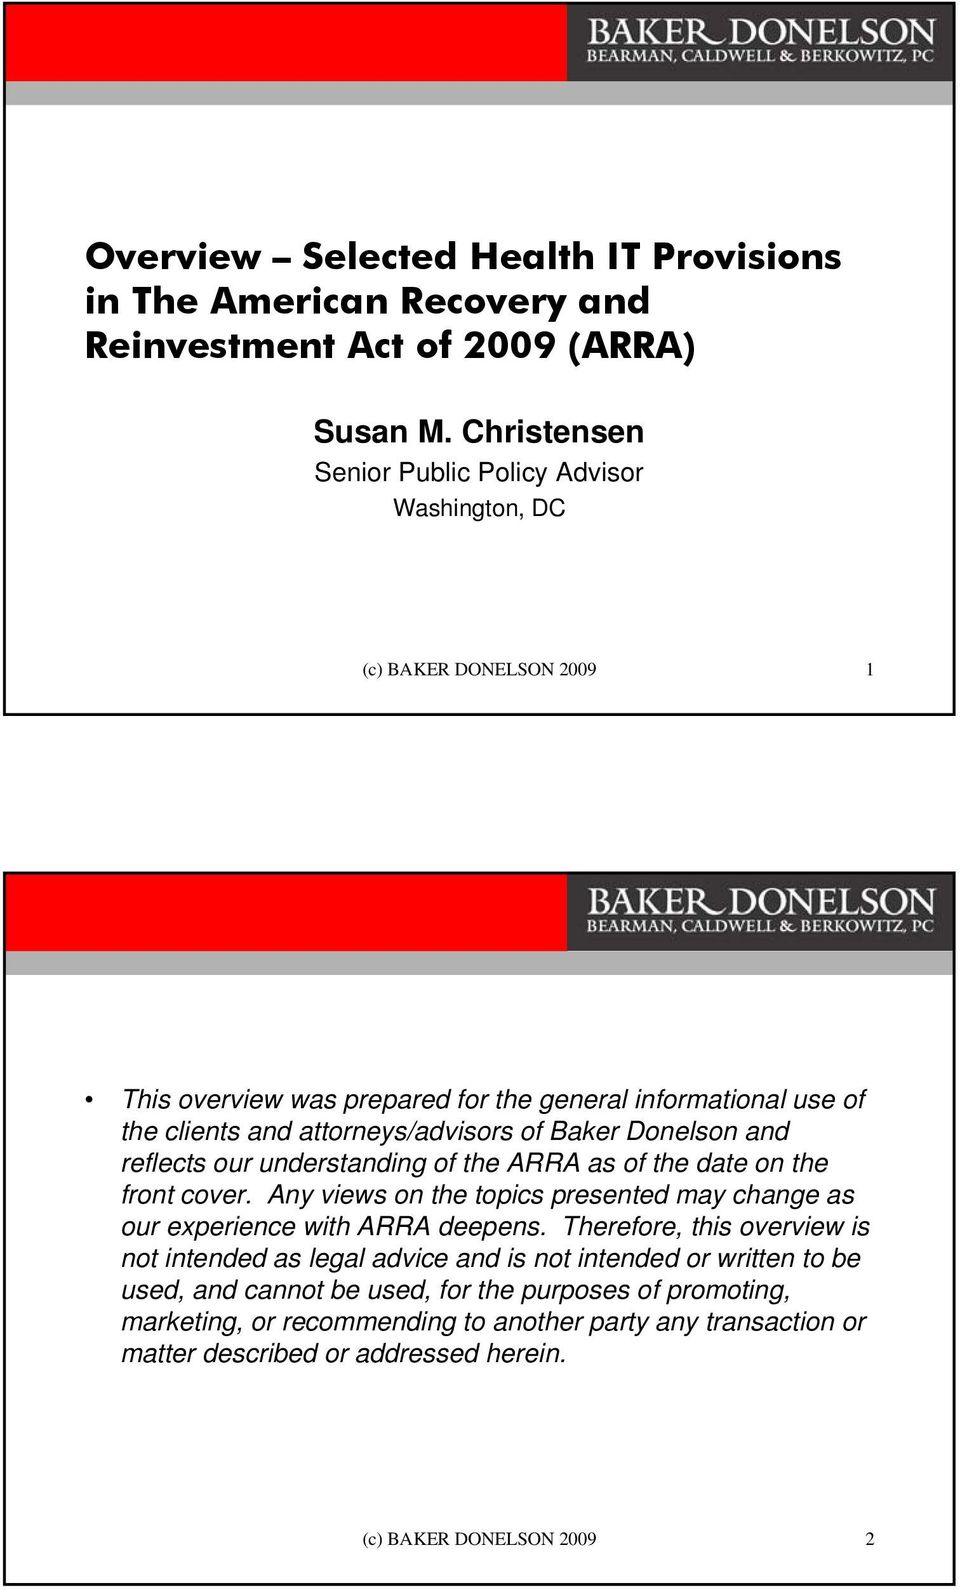 Baker Donelson and reflects our understanding of the ARRA as of the date on the front cover. Any views on the topics presented may change as our experience with ARRA deepens.